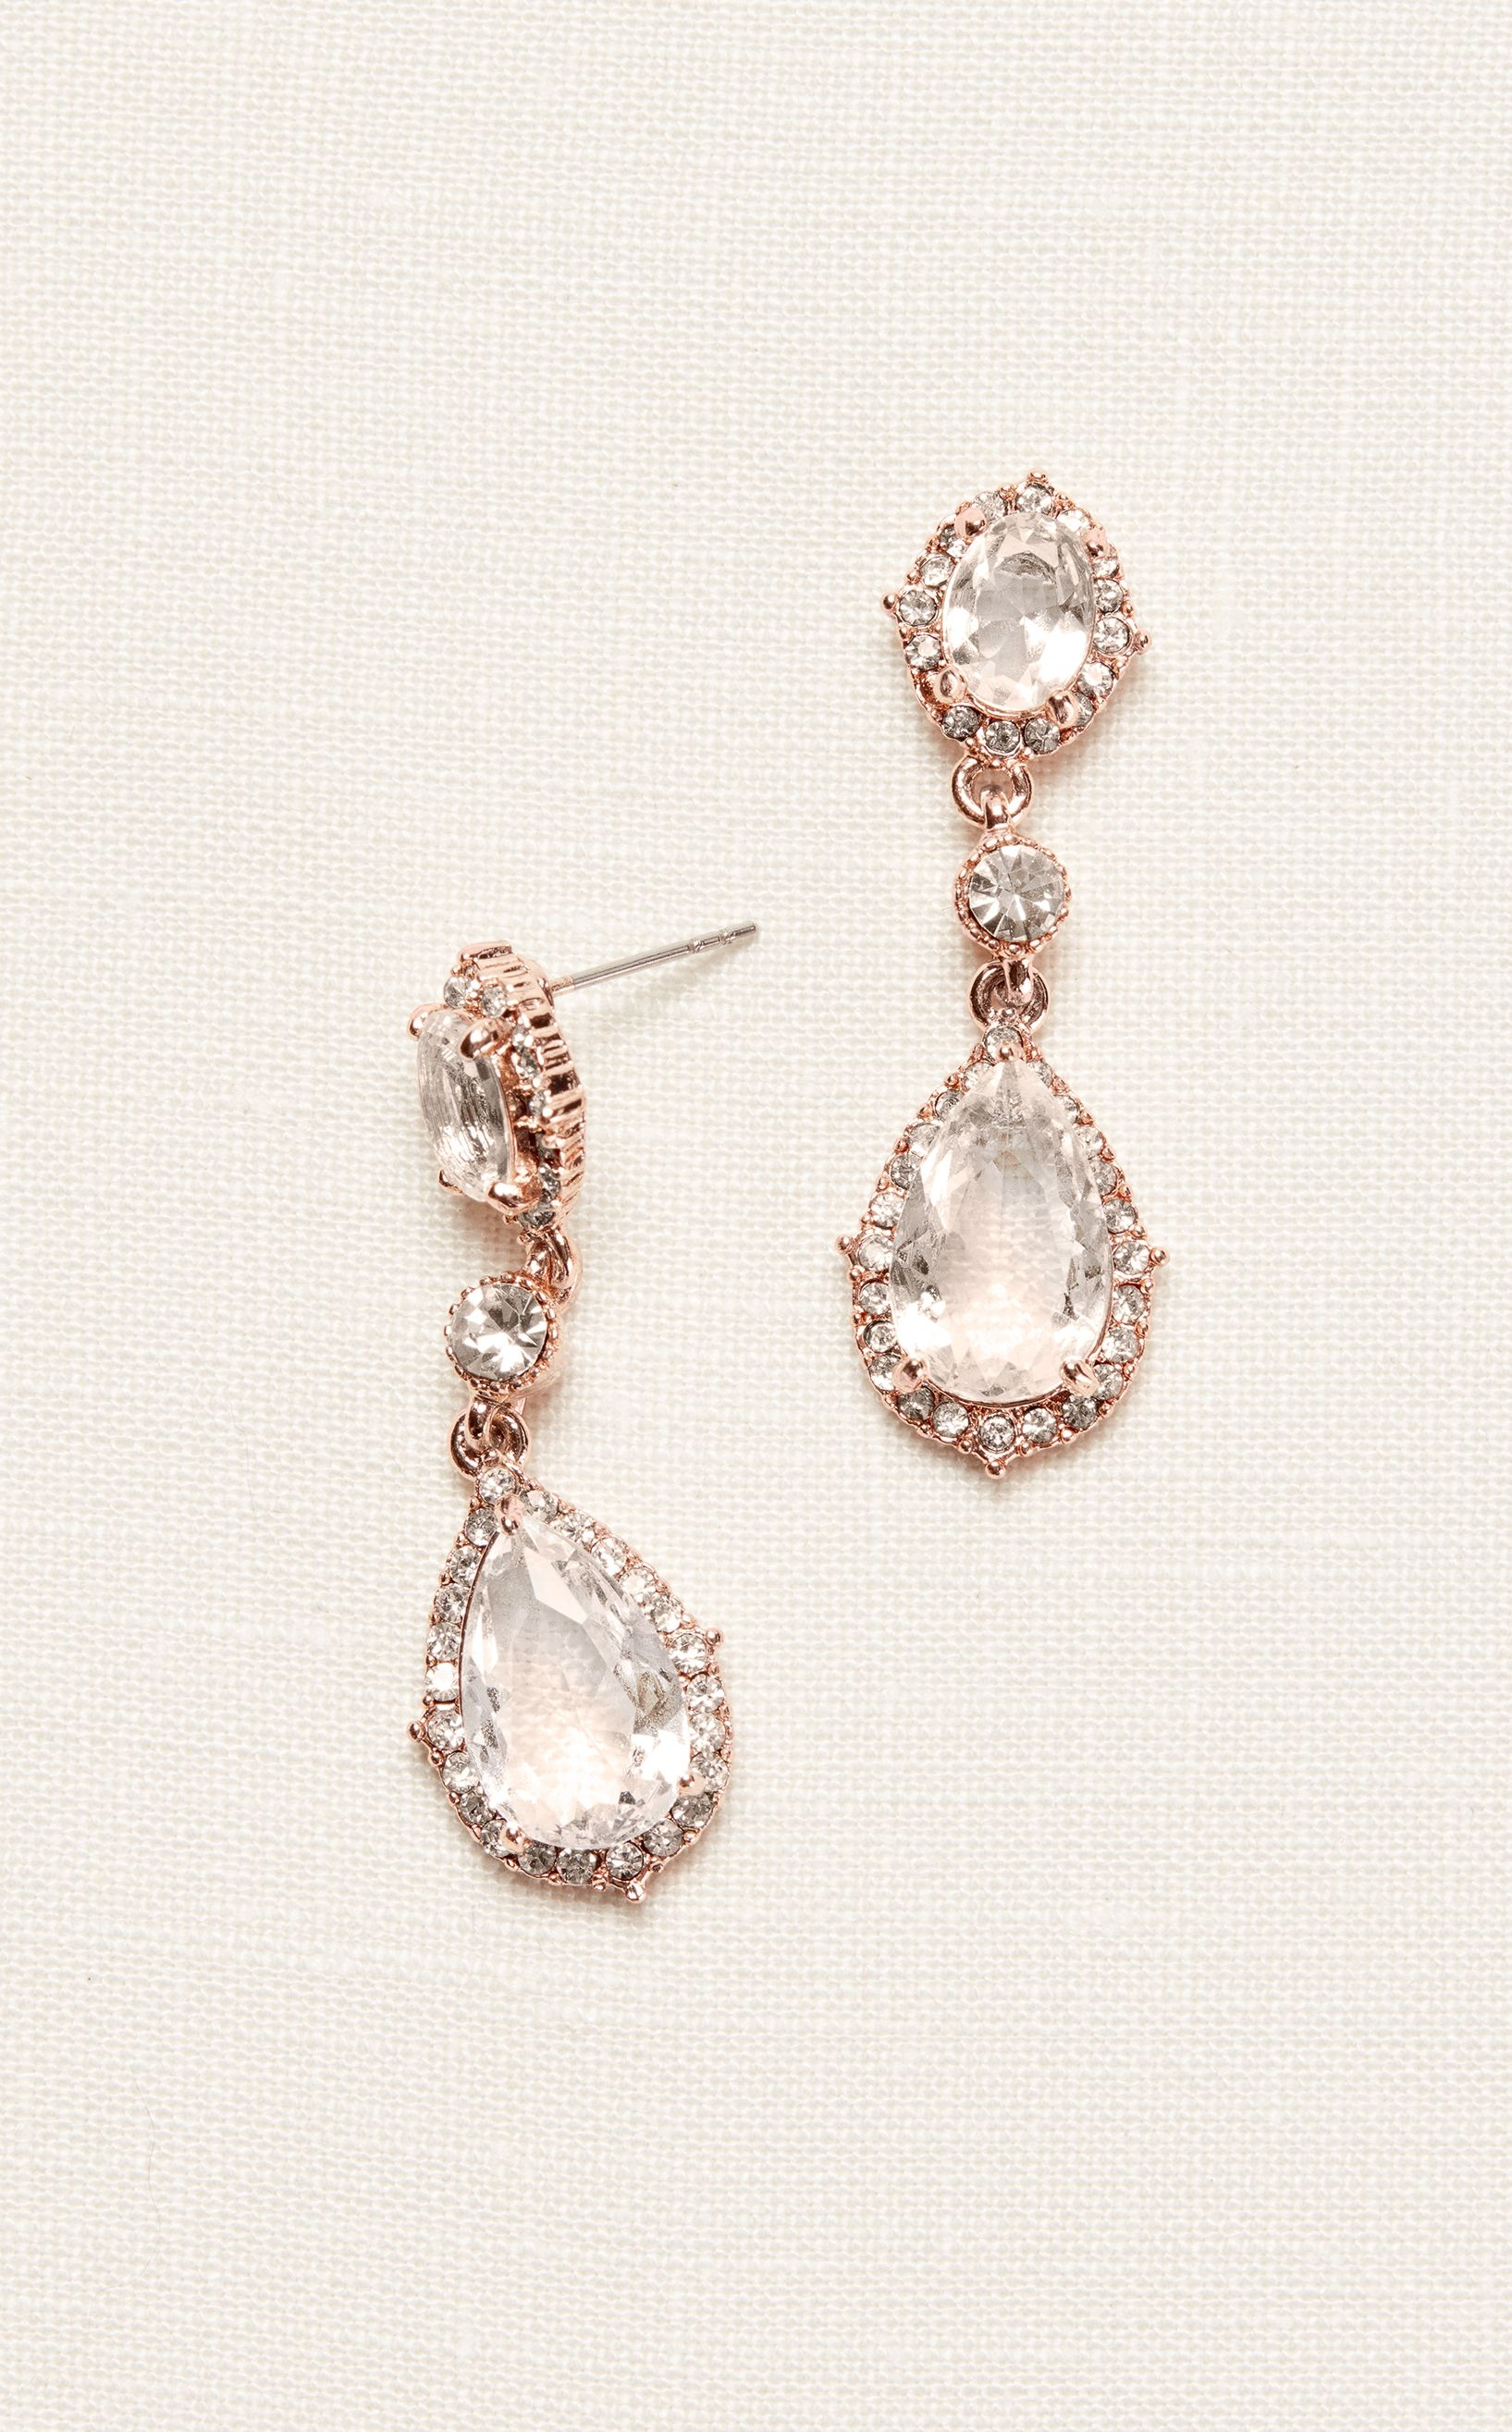 Filigree And Crystal Drop Earrings Homecoming Accessories At David S Bridal